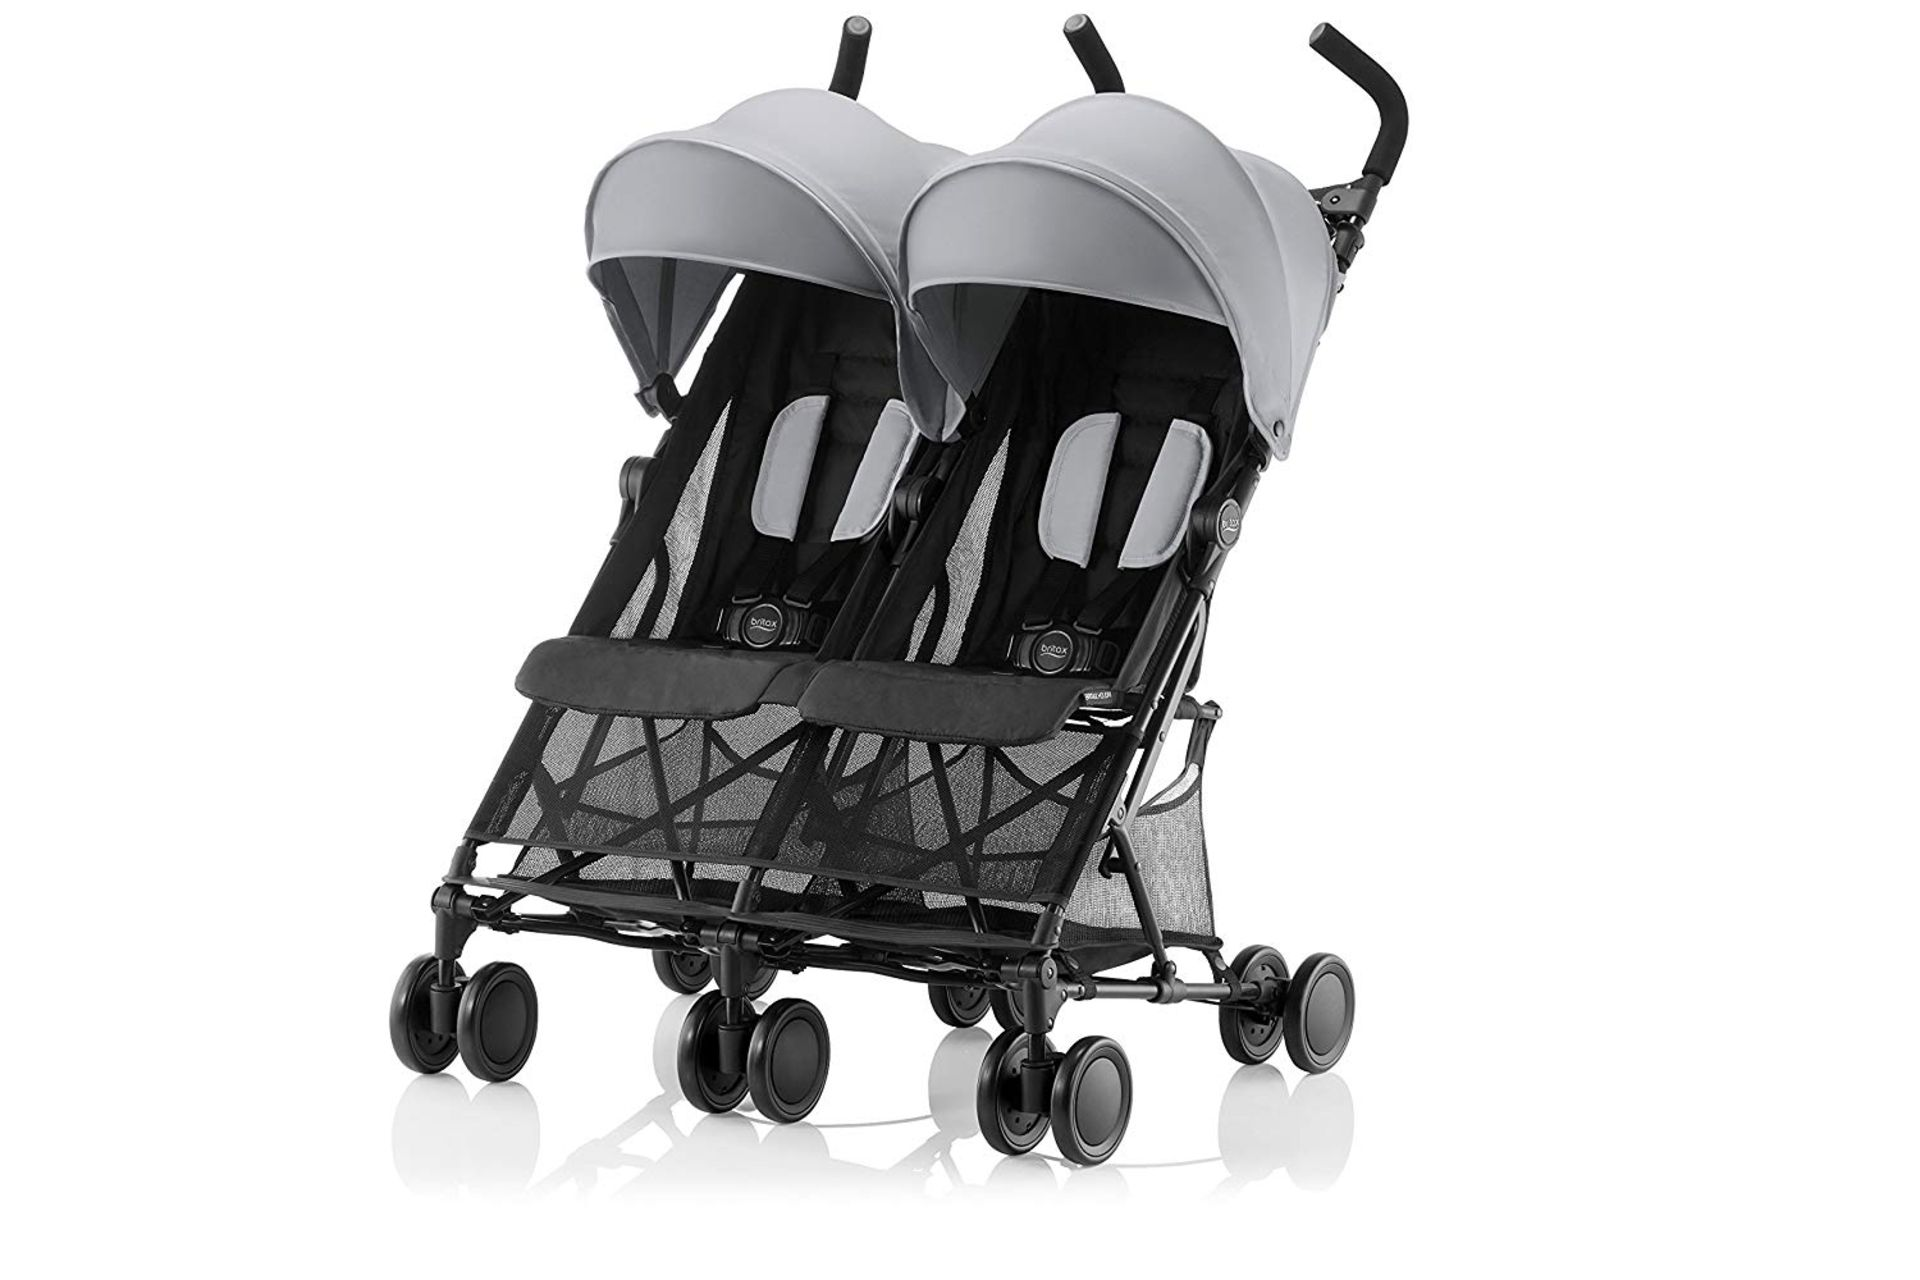 Lot 20 - Britax Römer HOLIDAY DOUBLE Pushchair (6 months - 15 kg|3 years ) - Steel Grey RRP £167.99